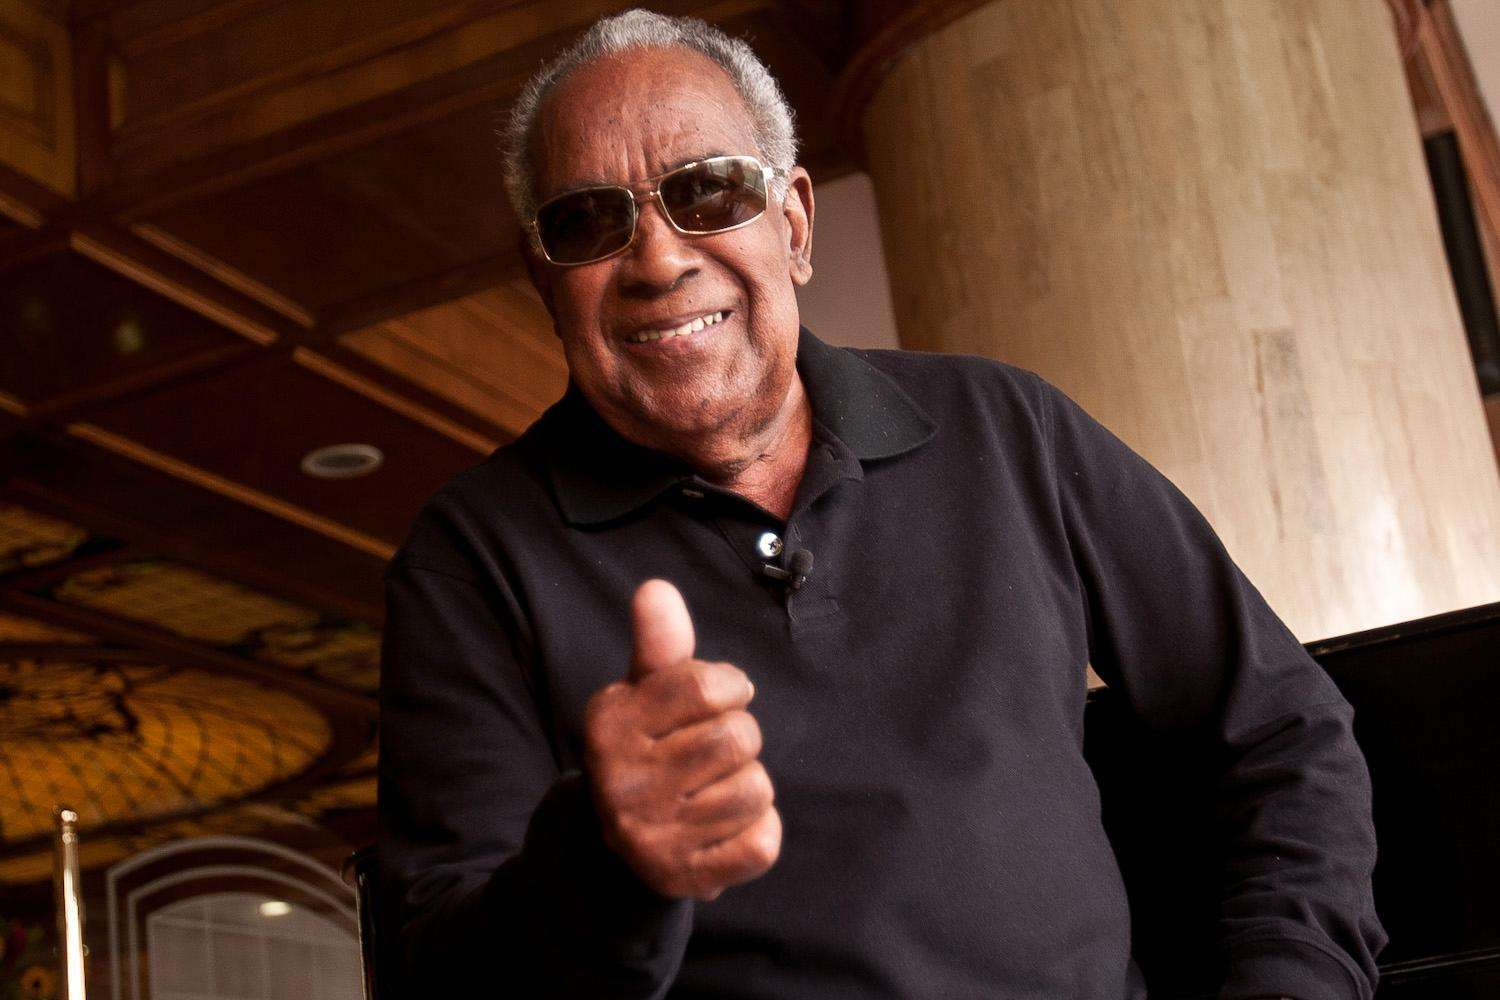 A native of Ponce, Puerto Rico, Cheo Feliciano was one of salsa music's biggest stars in the '70s, recording several landmark releases for iconic New York label, Fania Records.